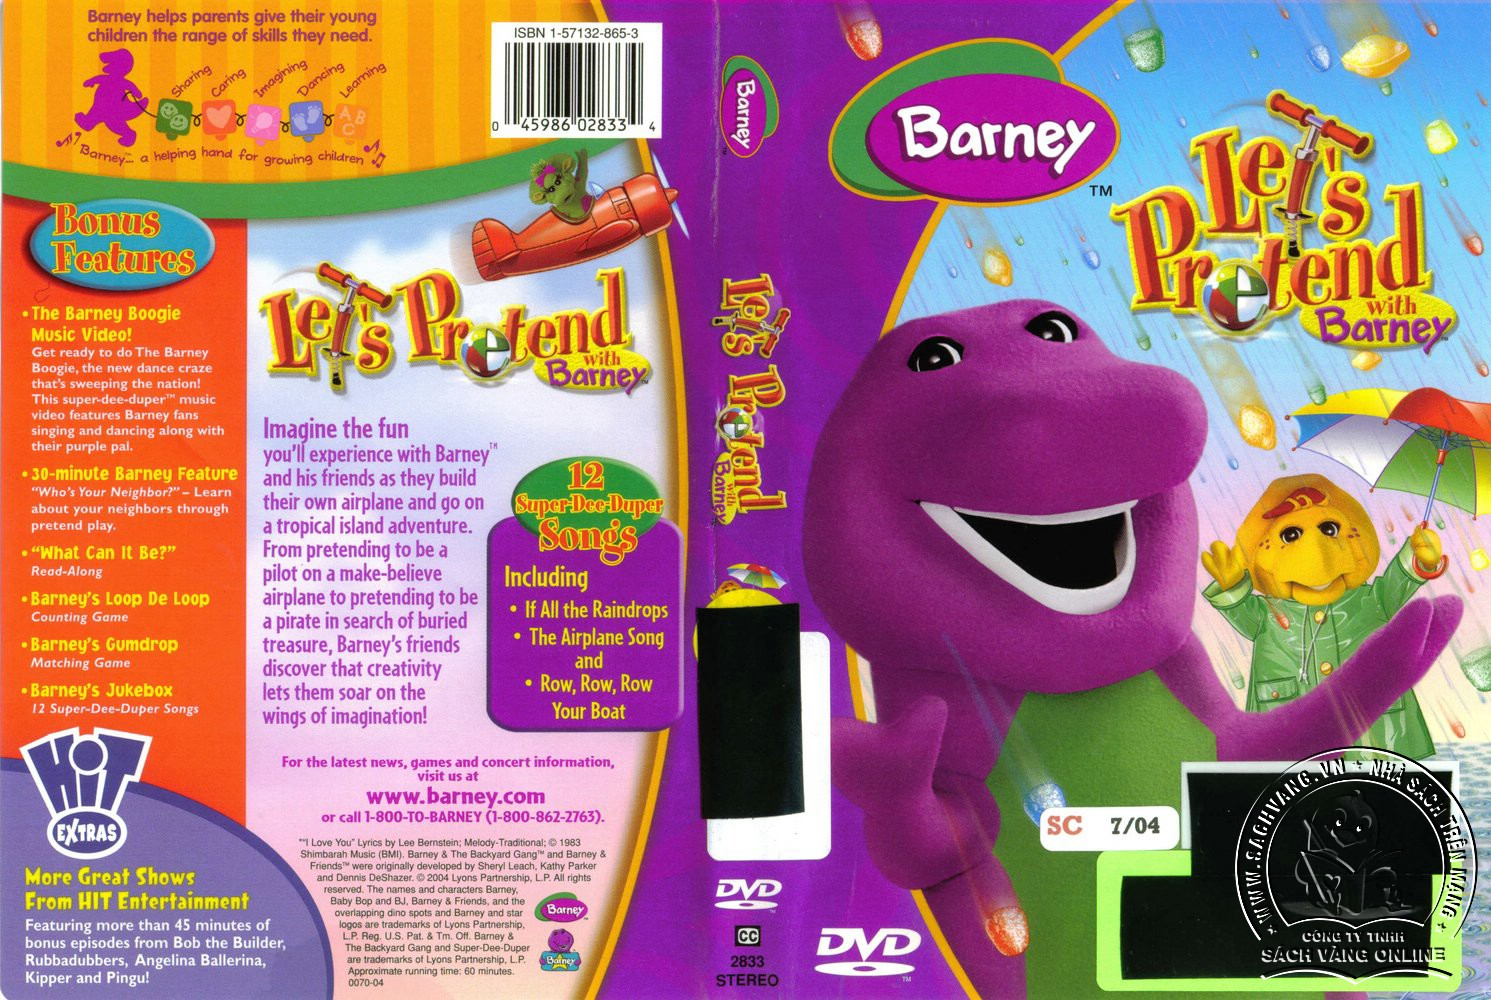 02. Barney Lets Pretend - cover